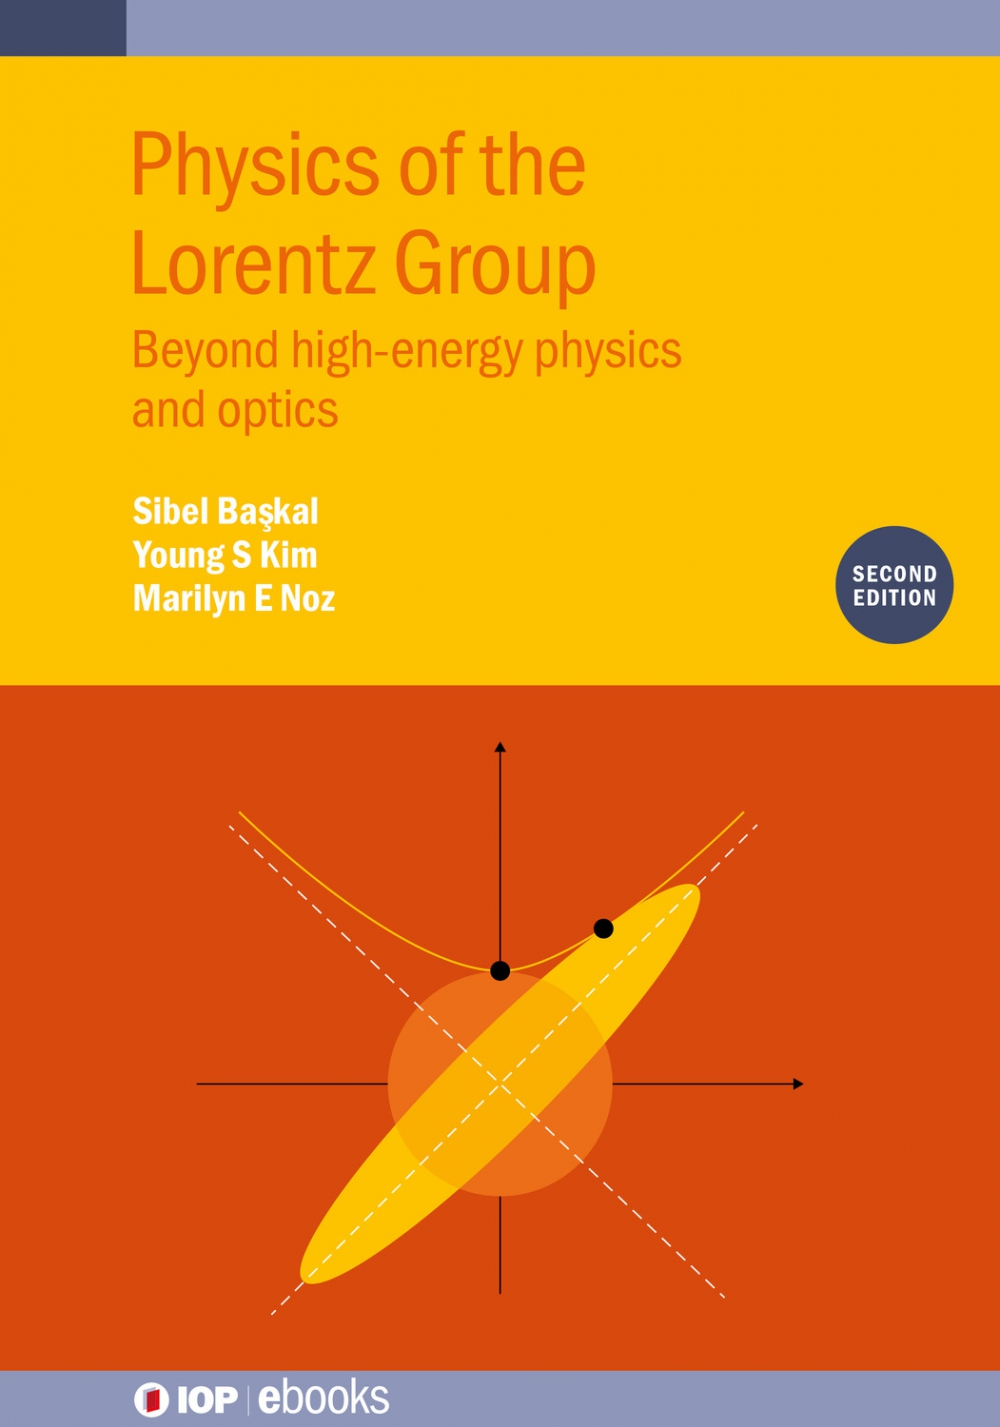 Jacket image for Physics of the Lorentz Group (Second Edition)